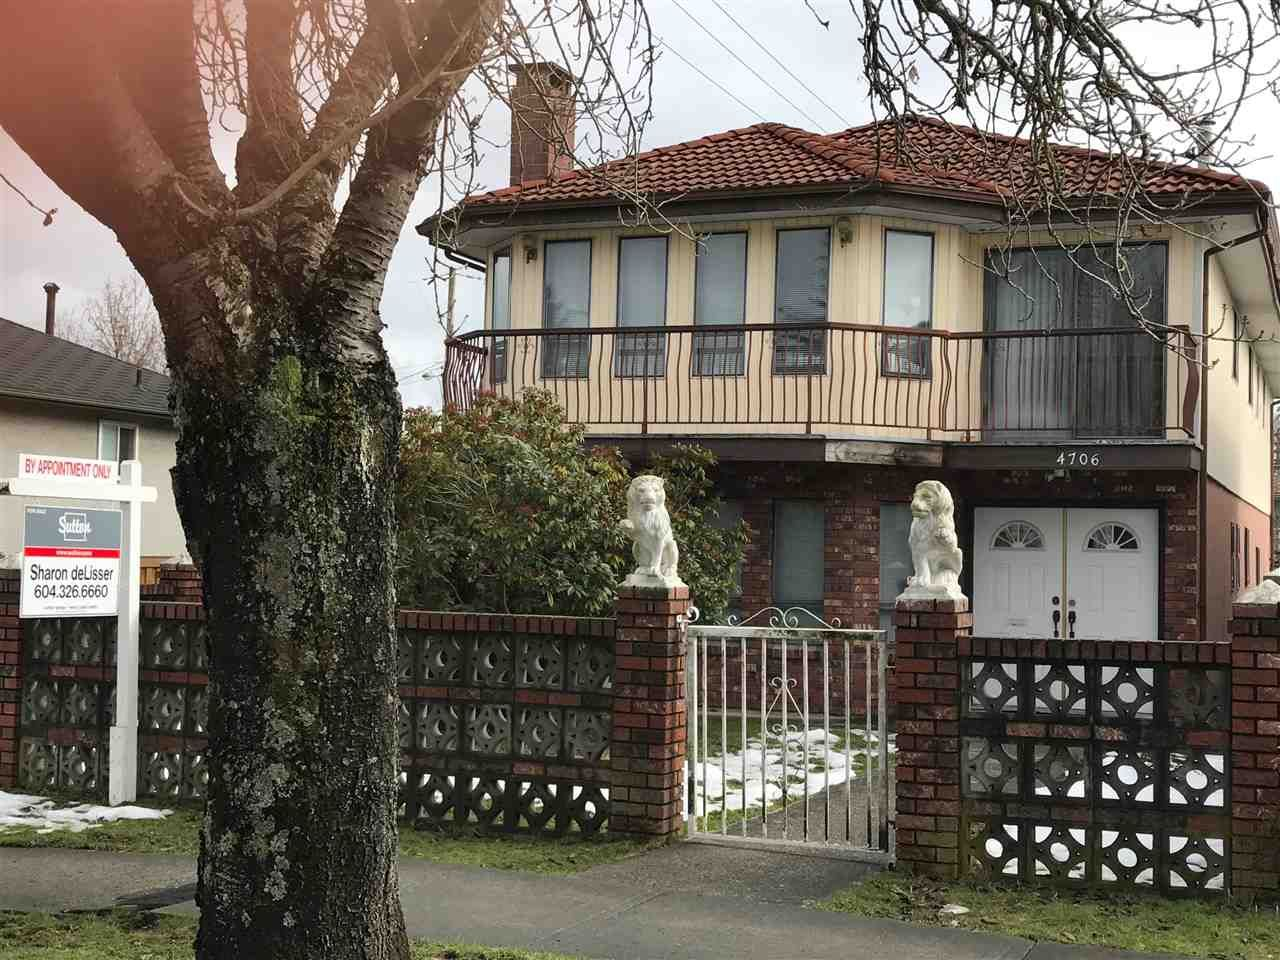 Main Photo: 4706 BRUCE STREET in : Victoria VE House for sale (Vancouver East)  : MLS®# R2145000